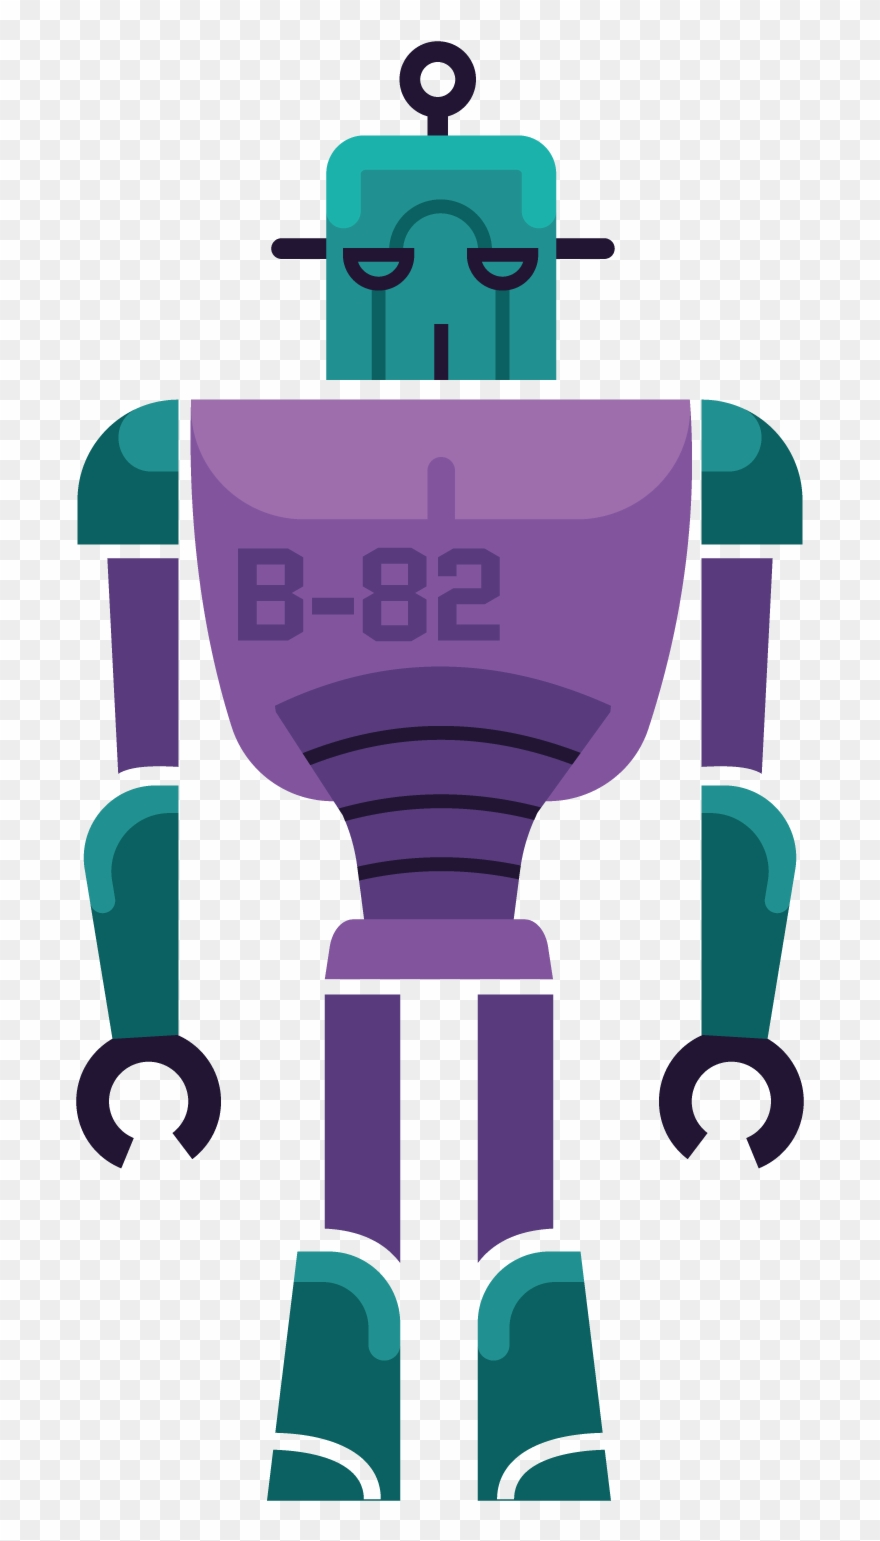 Icon Angry Robots Transprent Clipart (#3098039).